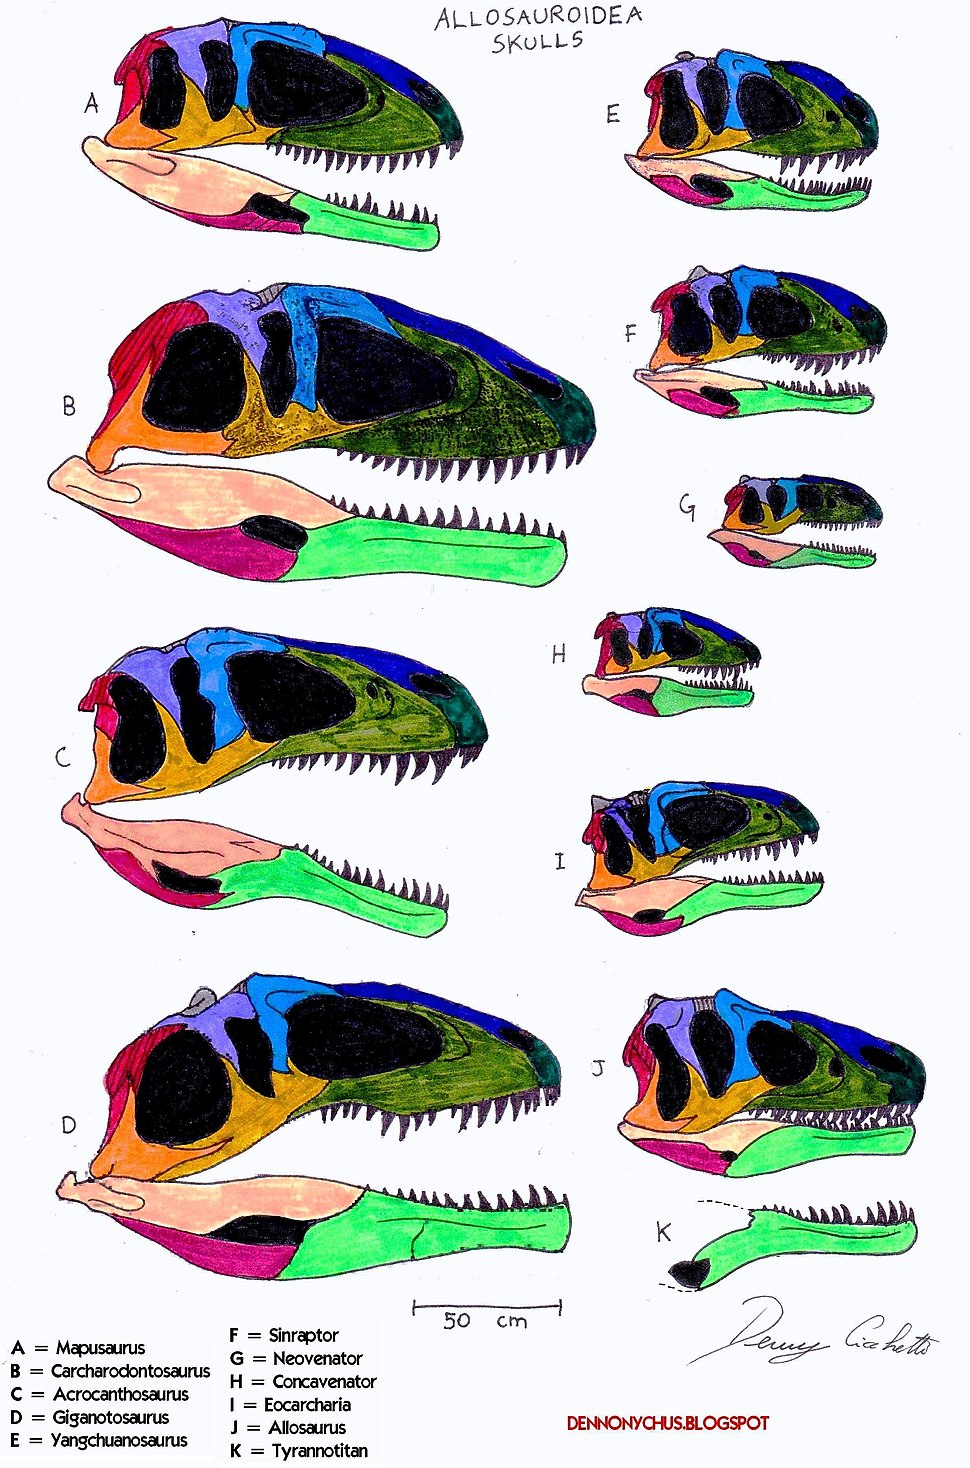 Allosauroidea skull comparison